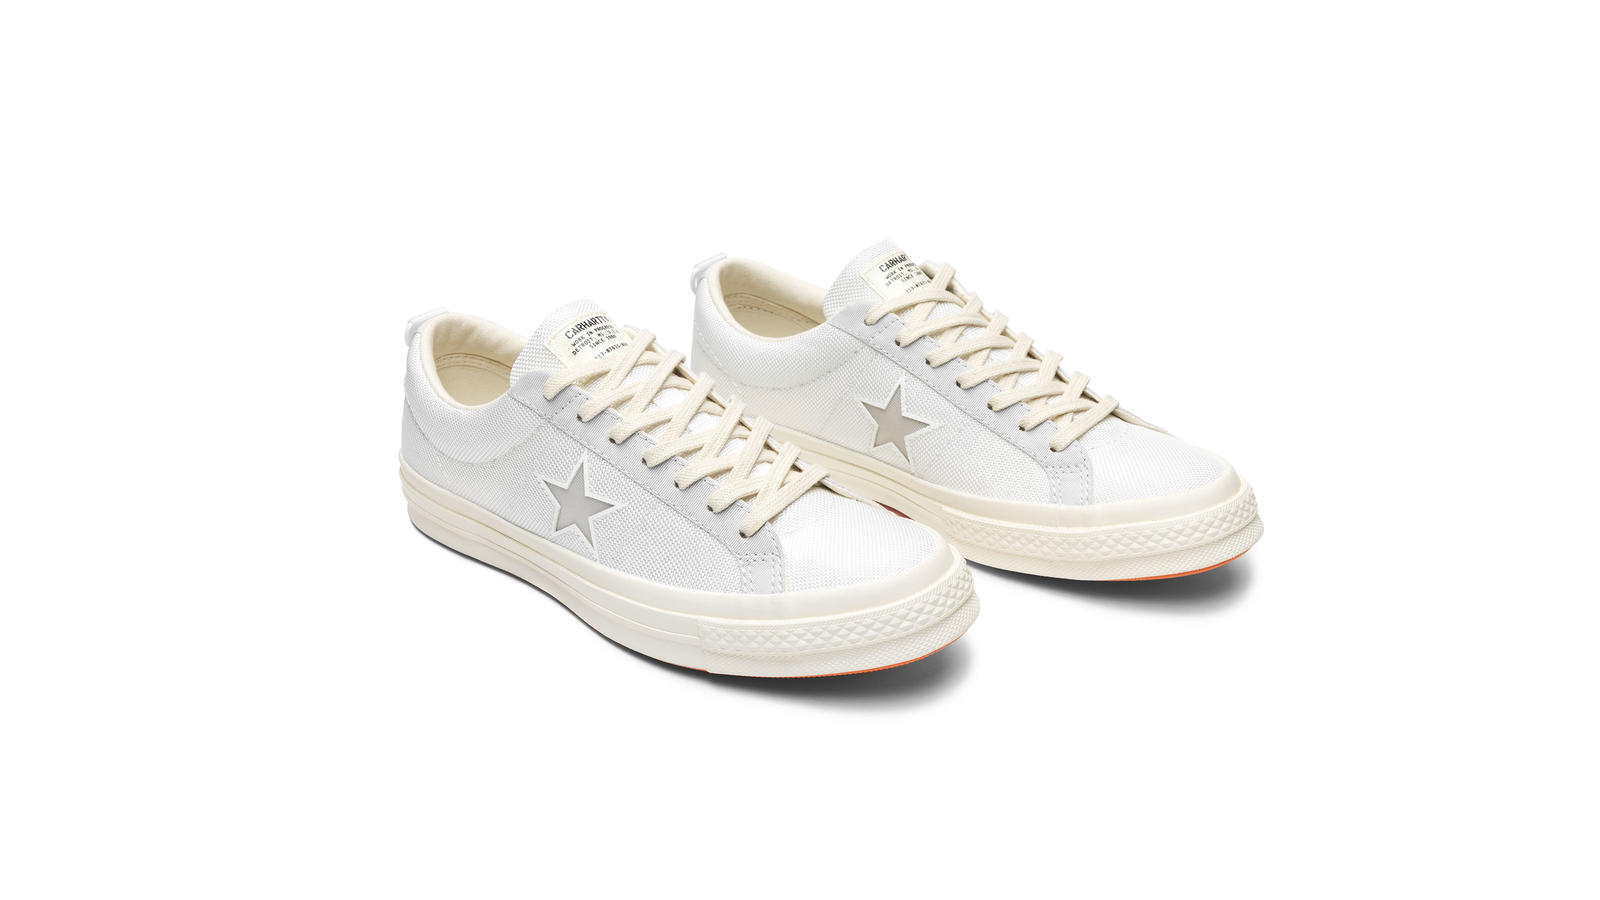 Converse x Carhartt WIP One Star Collection 5